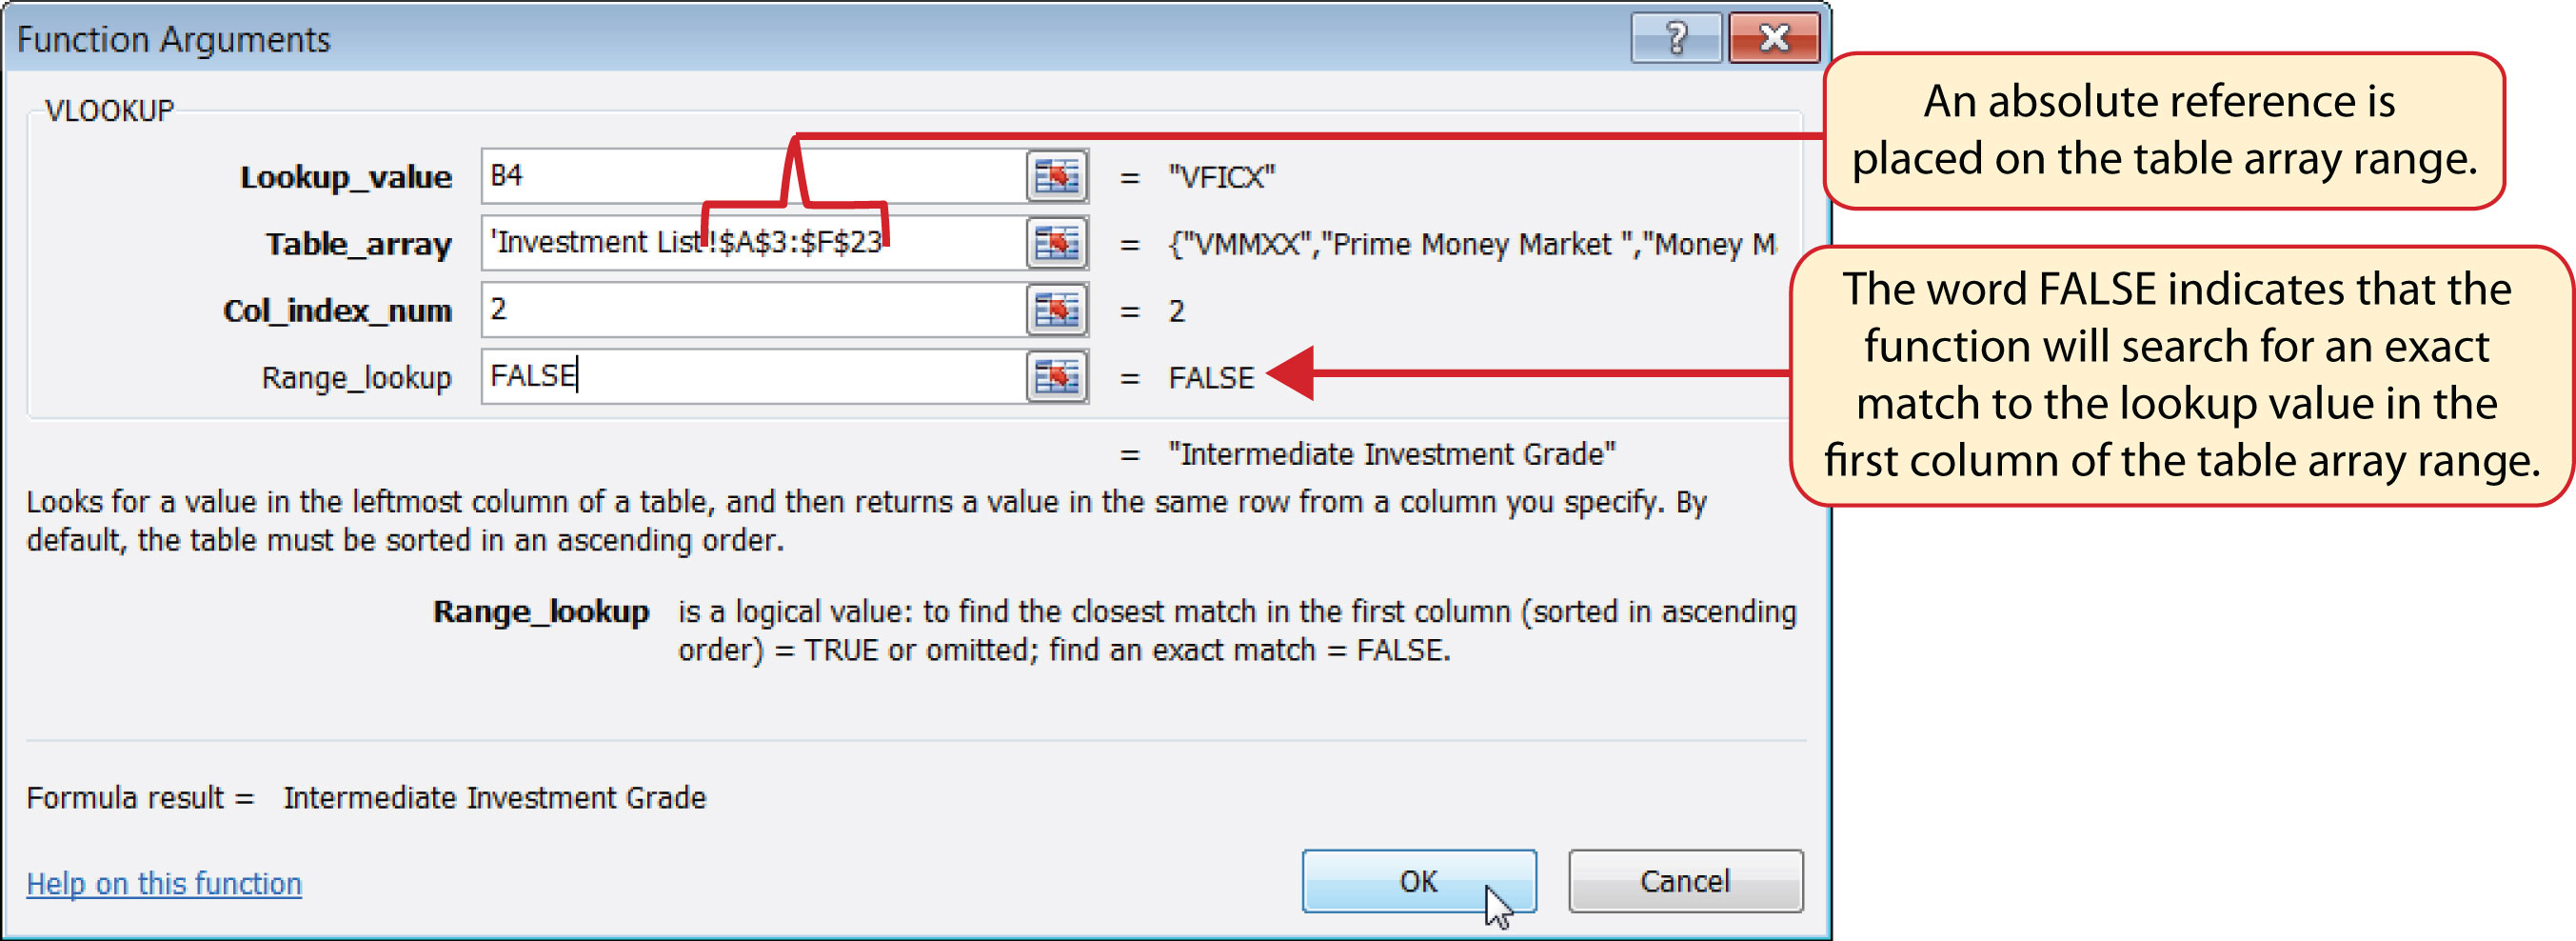 Figure 343pleted Function Arguments Dialog Box For The Vlookup Function